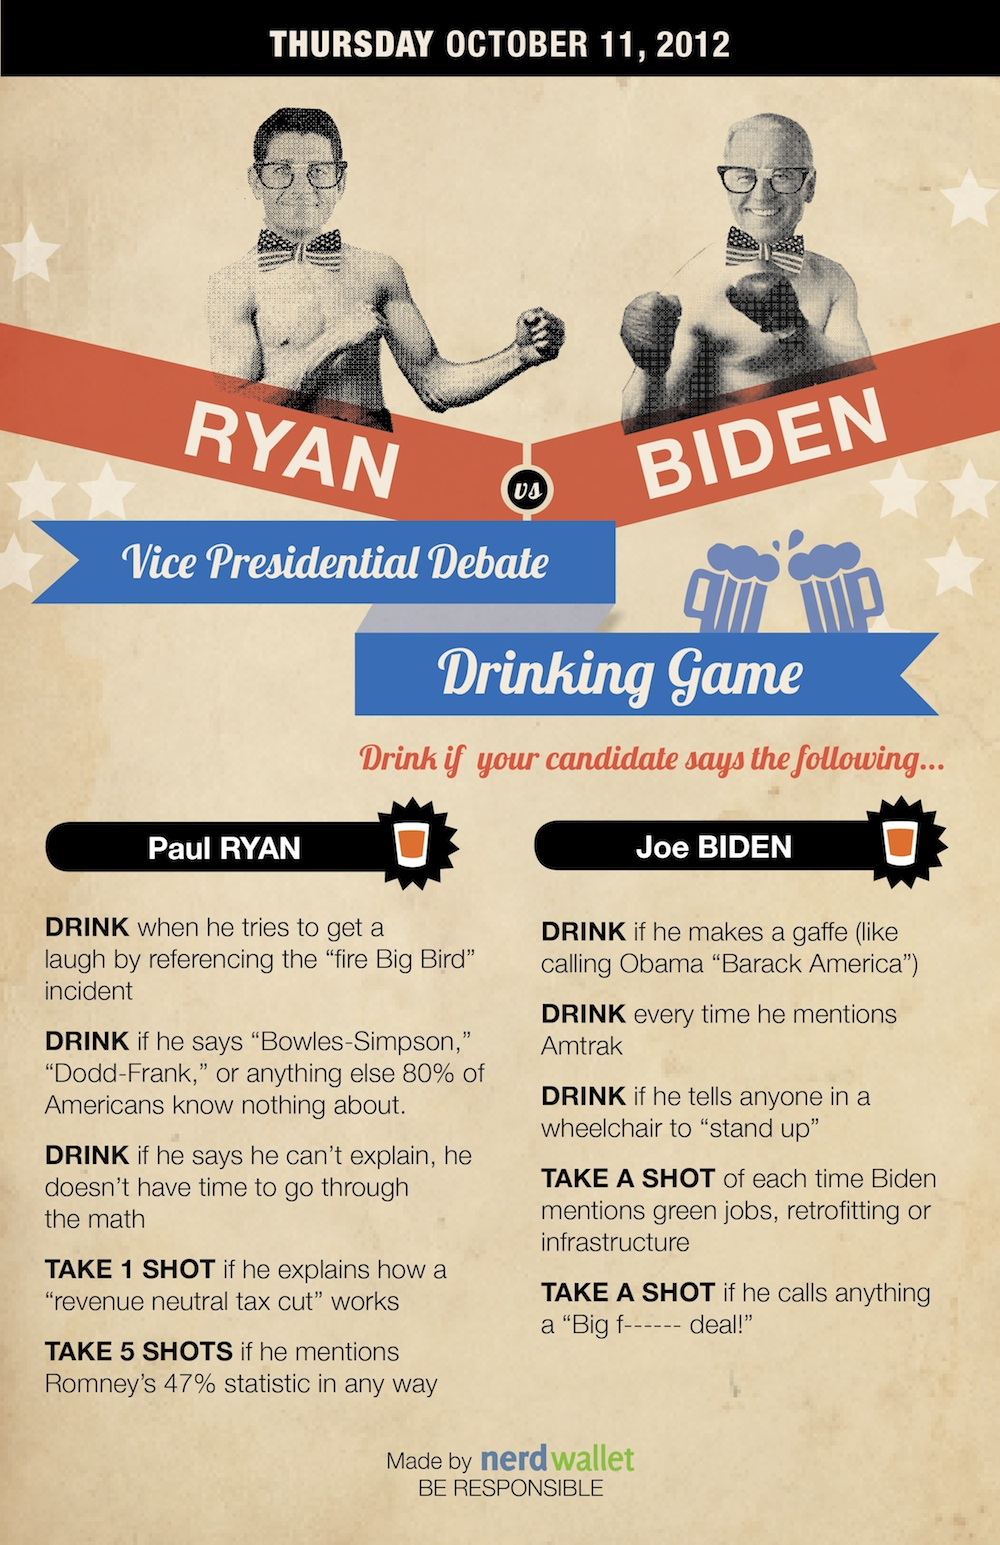 VP DRINKING GAME